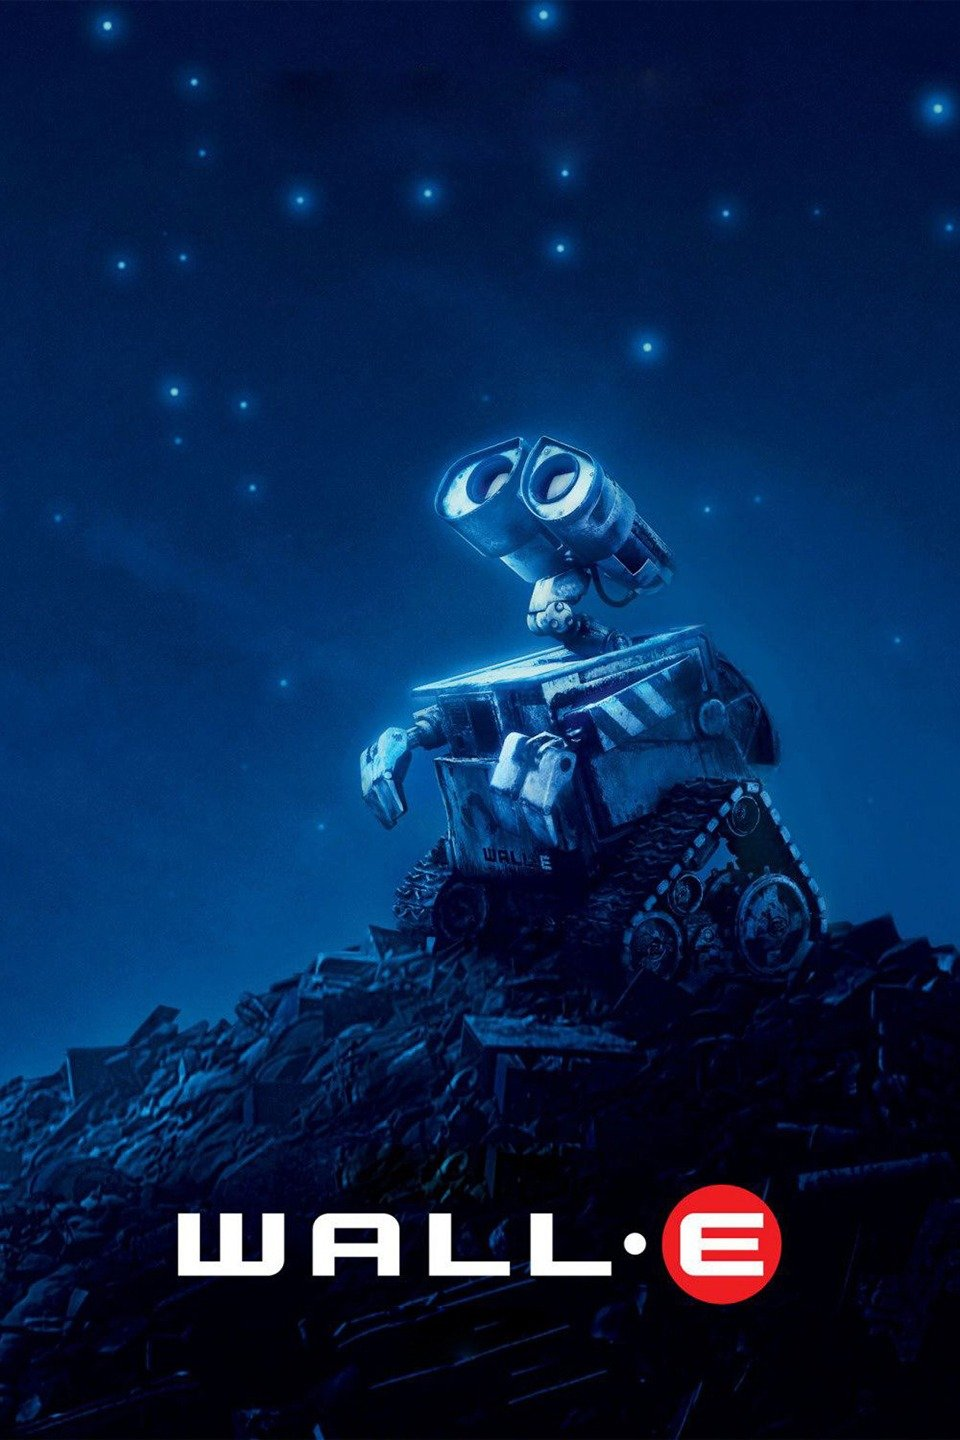 WALL-E (2008)[1080p][Hindi Audio Only][Dzrg Torrents] ~ 1.40 GB